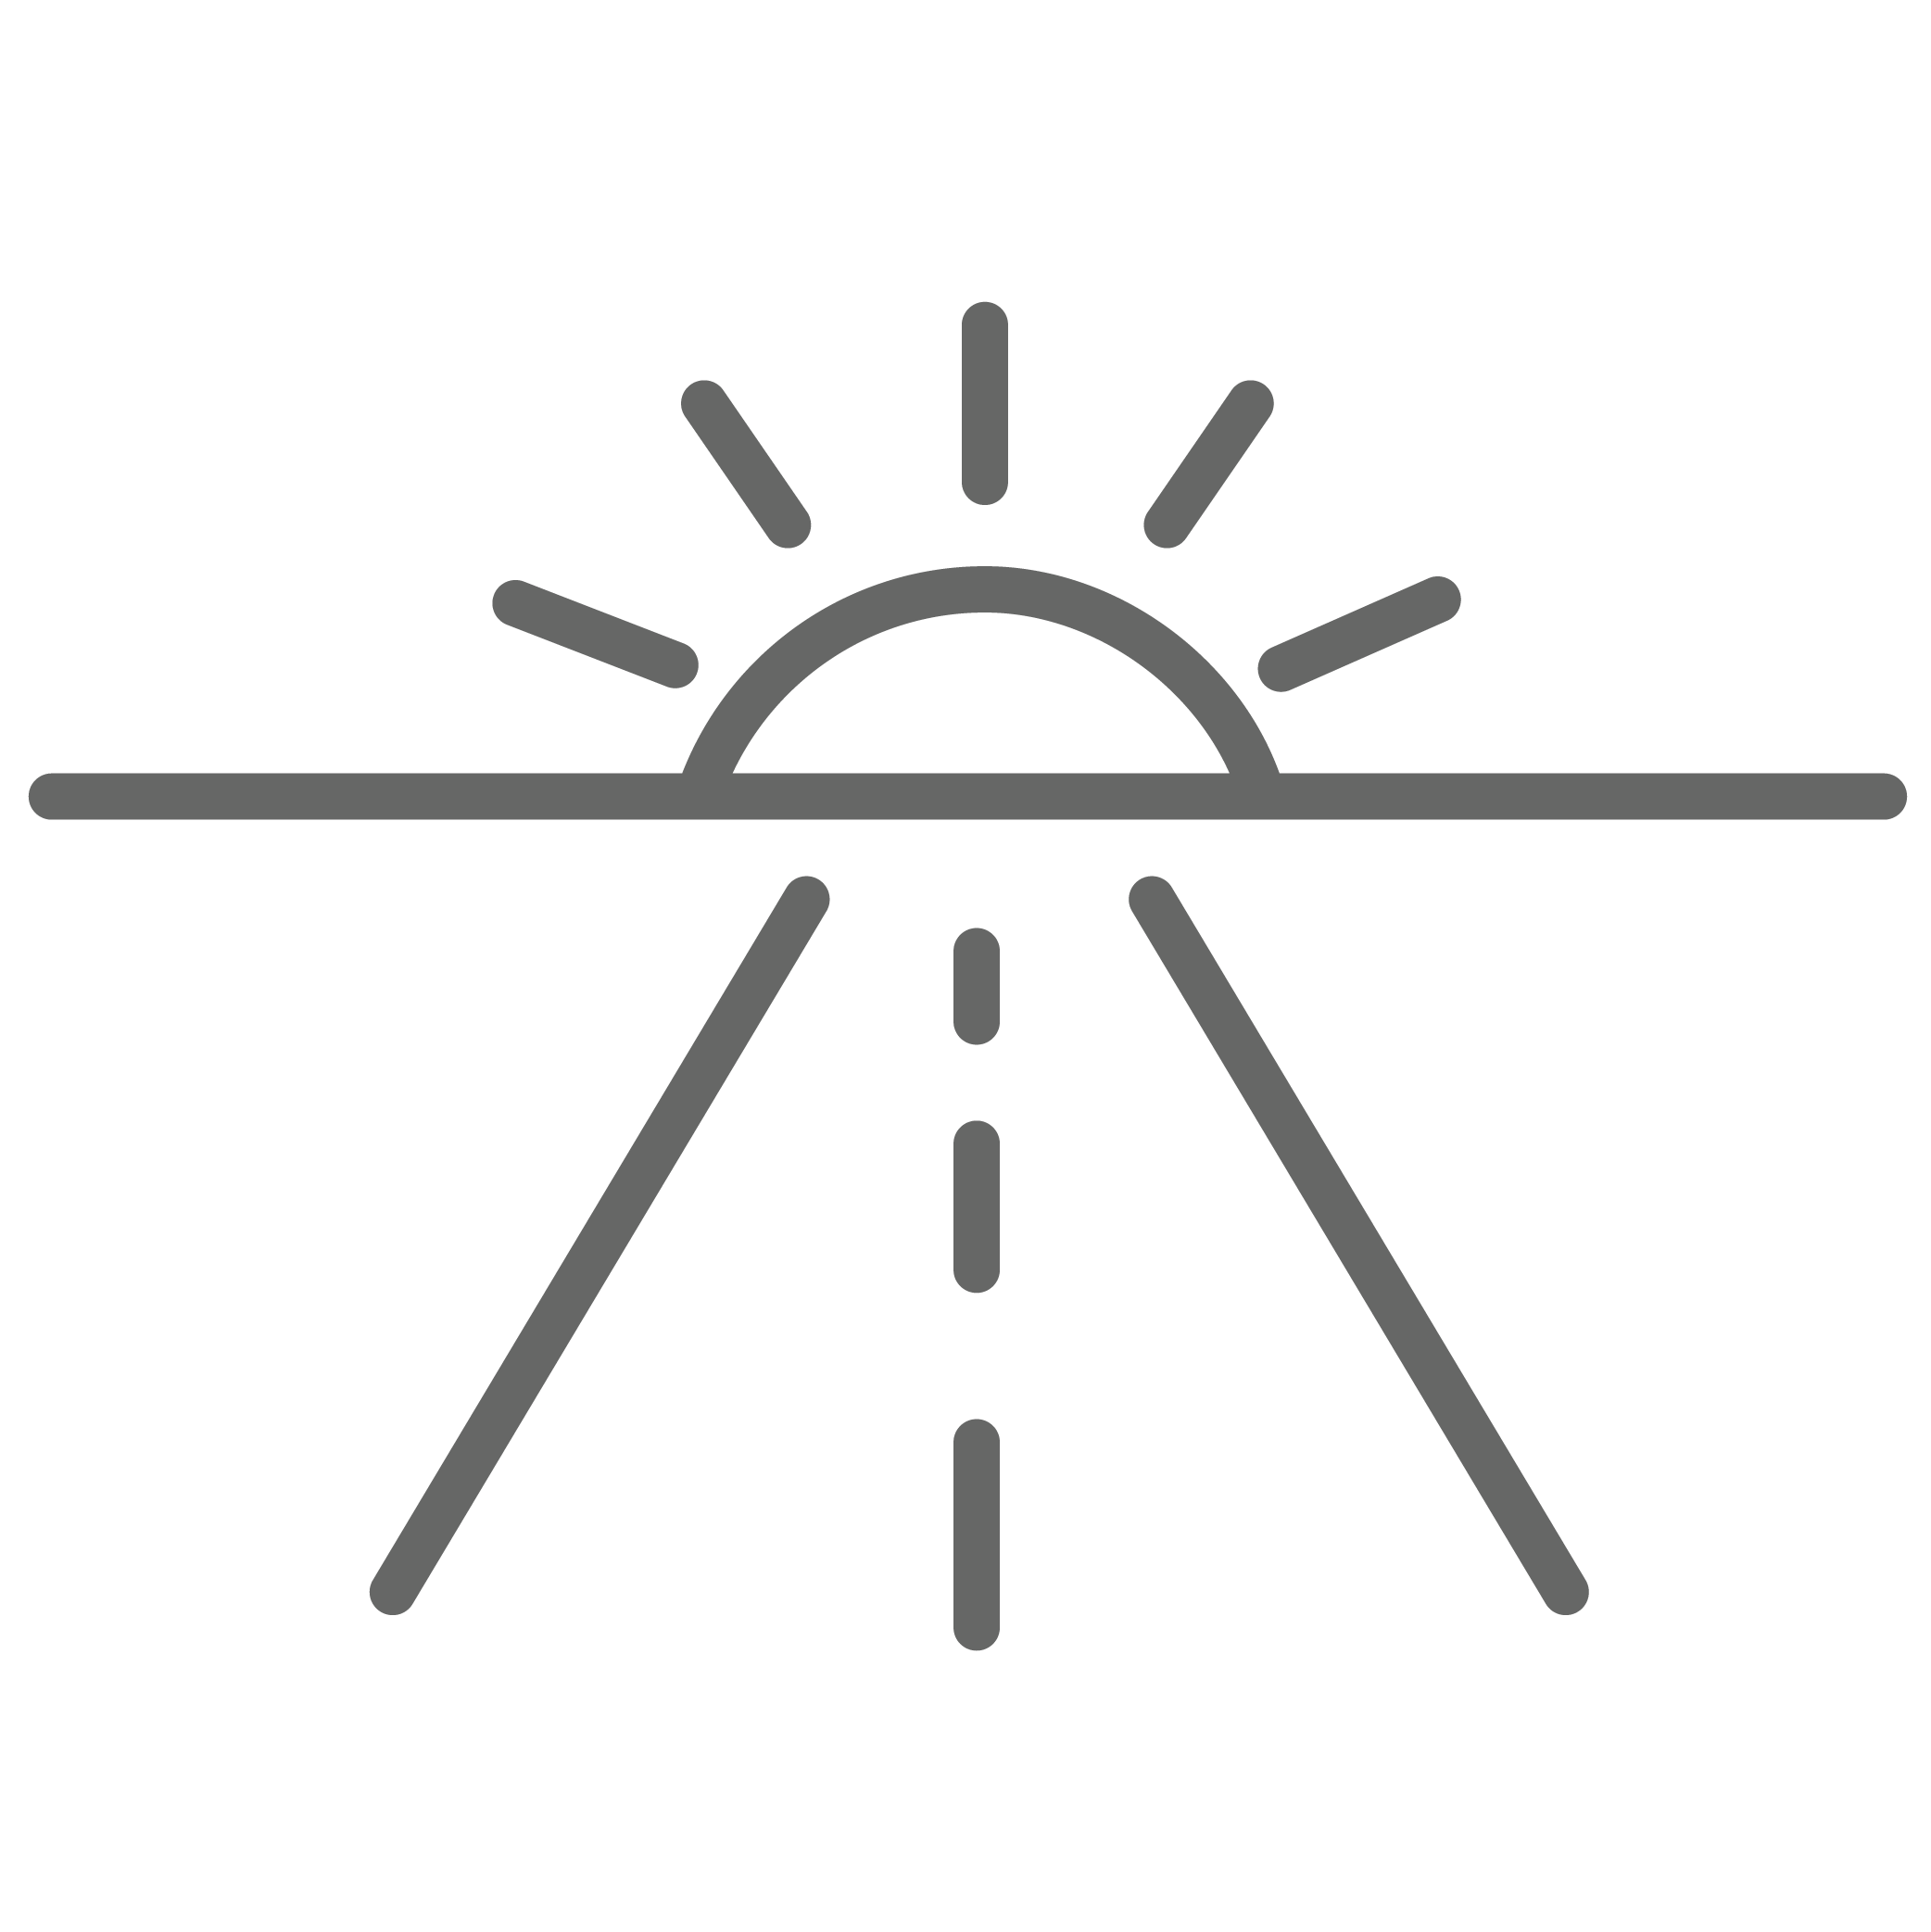 Outline of a road pointing towards sunset on the horizon.